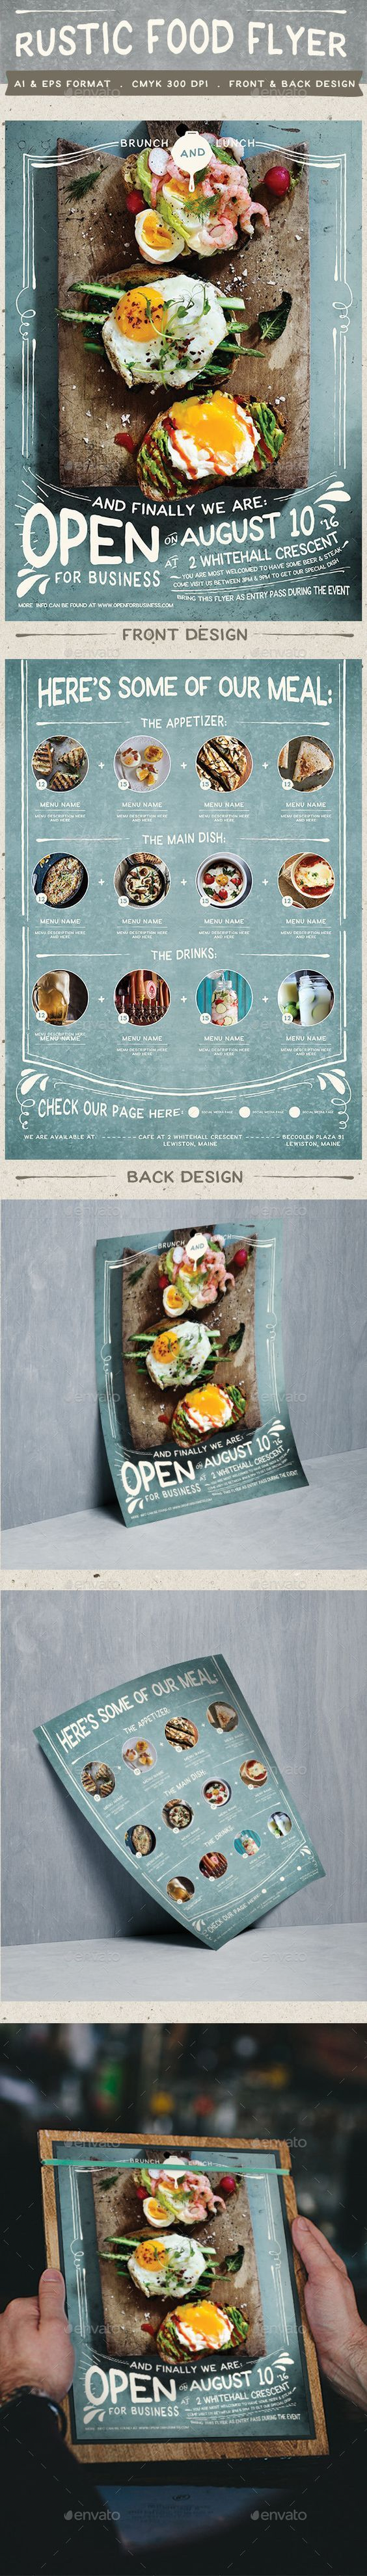 Rustic Food Promo Flyer Template #design Download: http://graphicriver.net/item/rustic-food-promo-flyer/12482053?ref=ksioks: